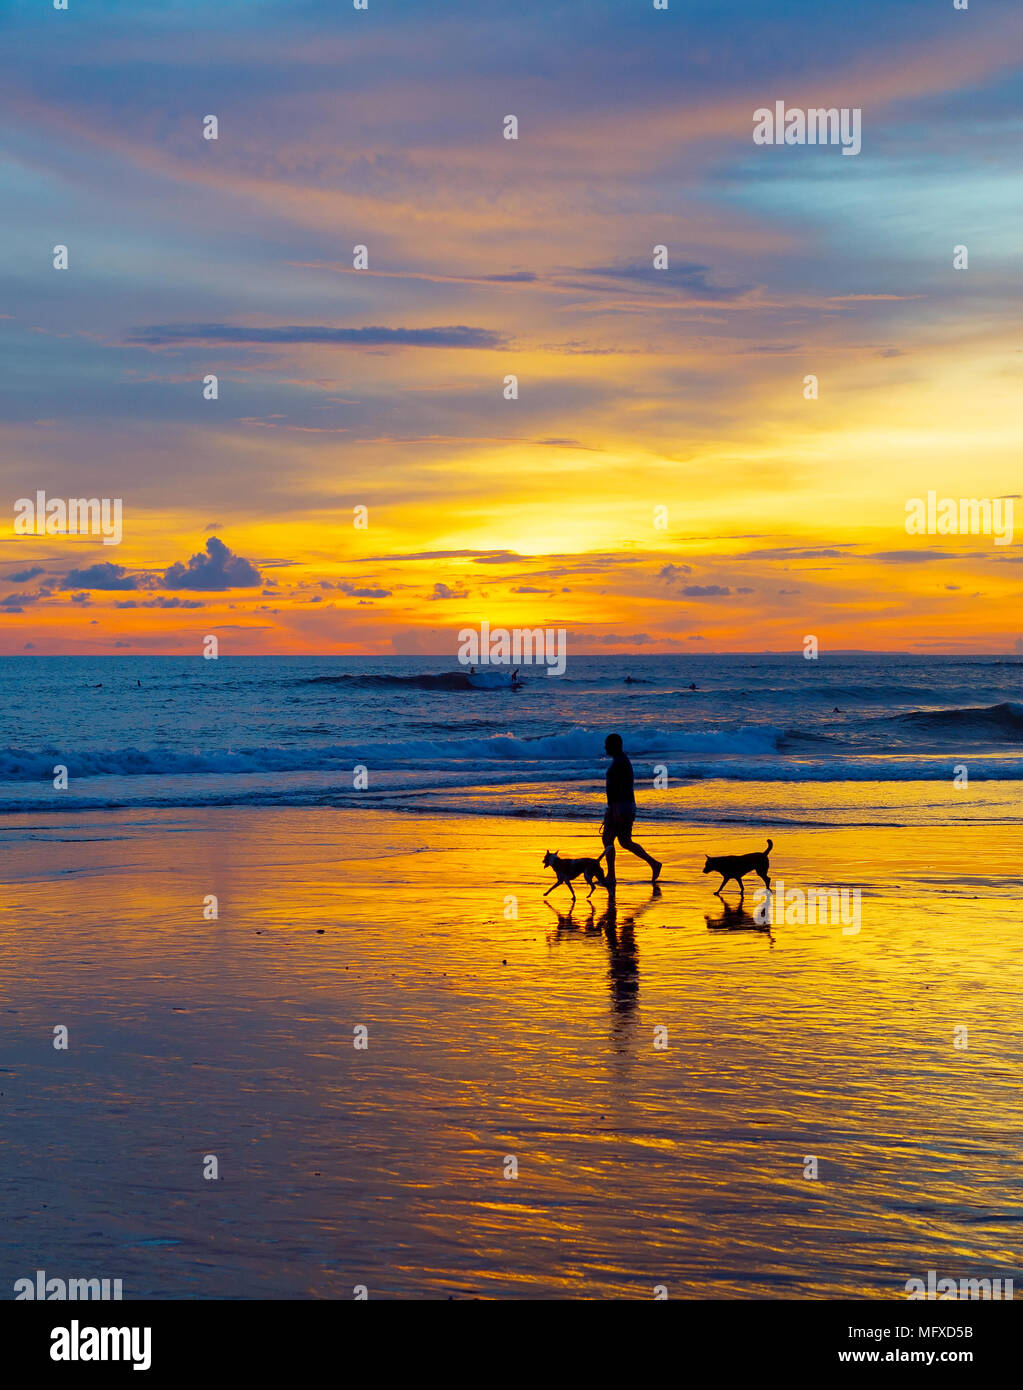 Silhouette of a man walking with the dogs on a beach at sunset. Bali island, Indonesia Stock Photo